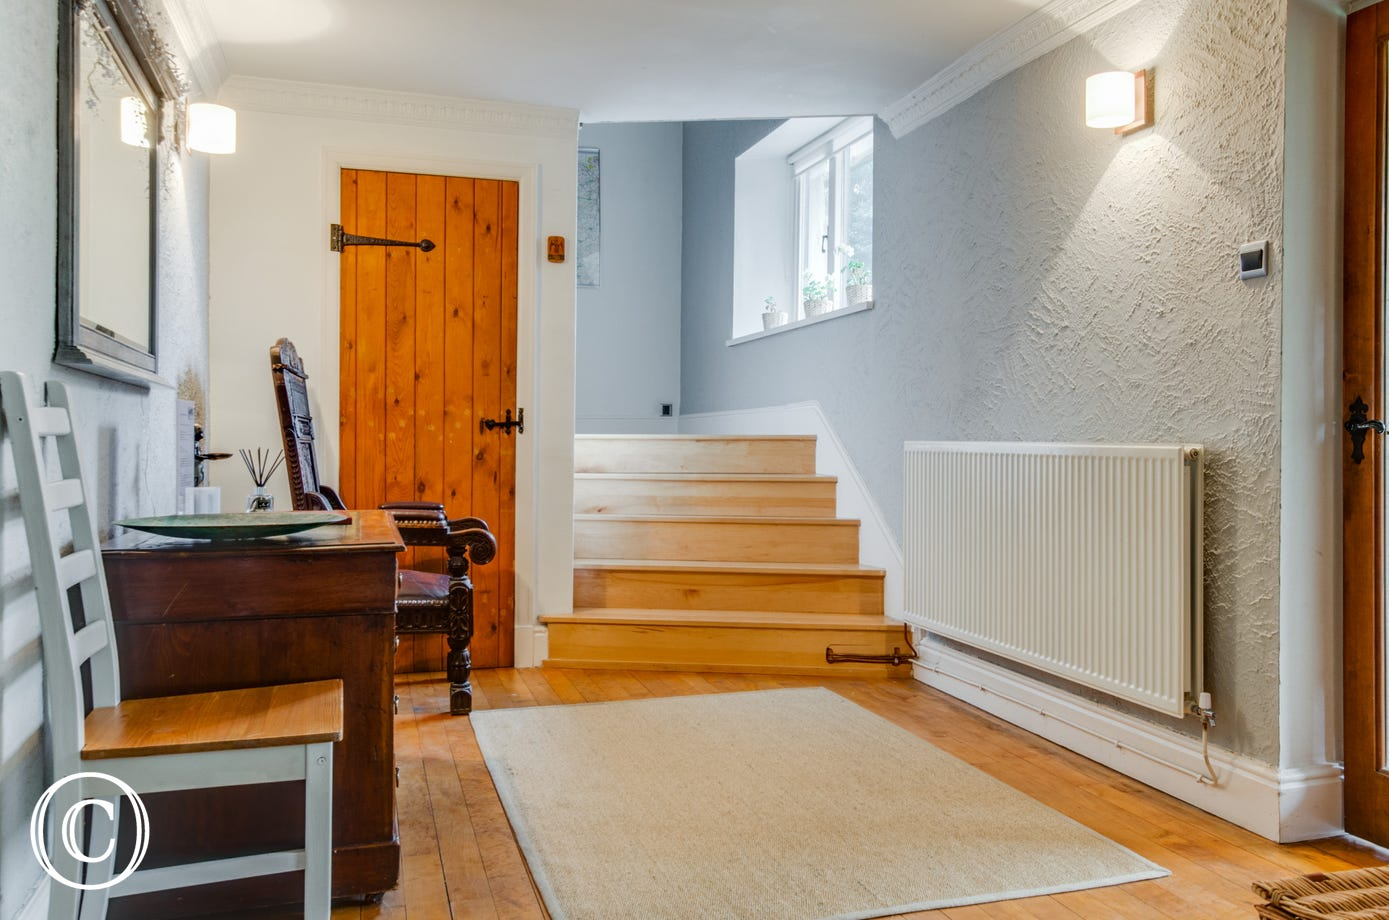 Smart wooden flooring throughout